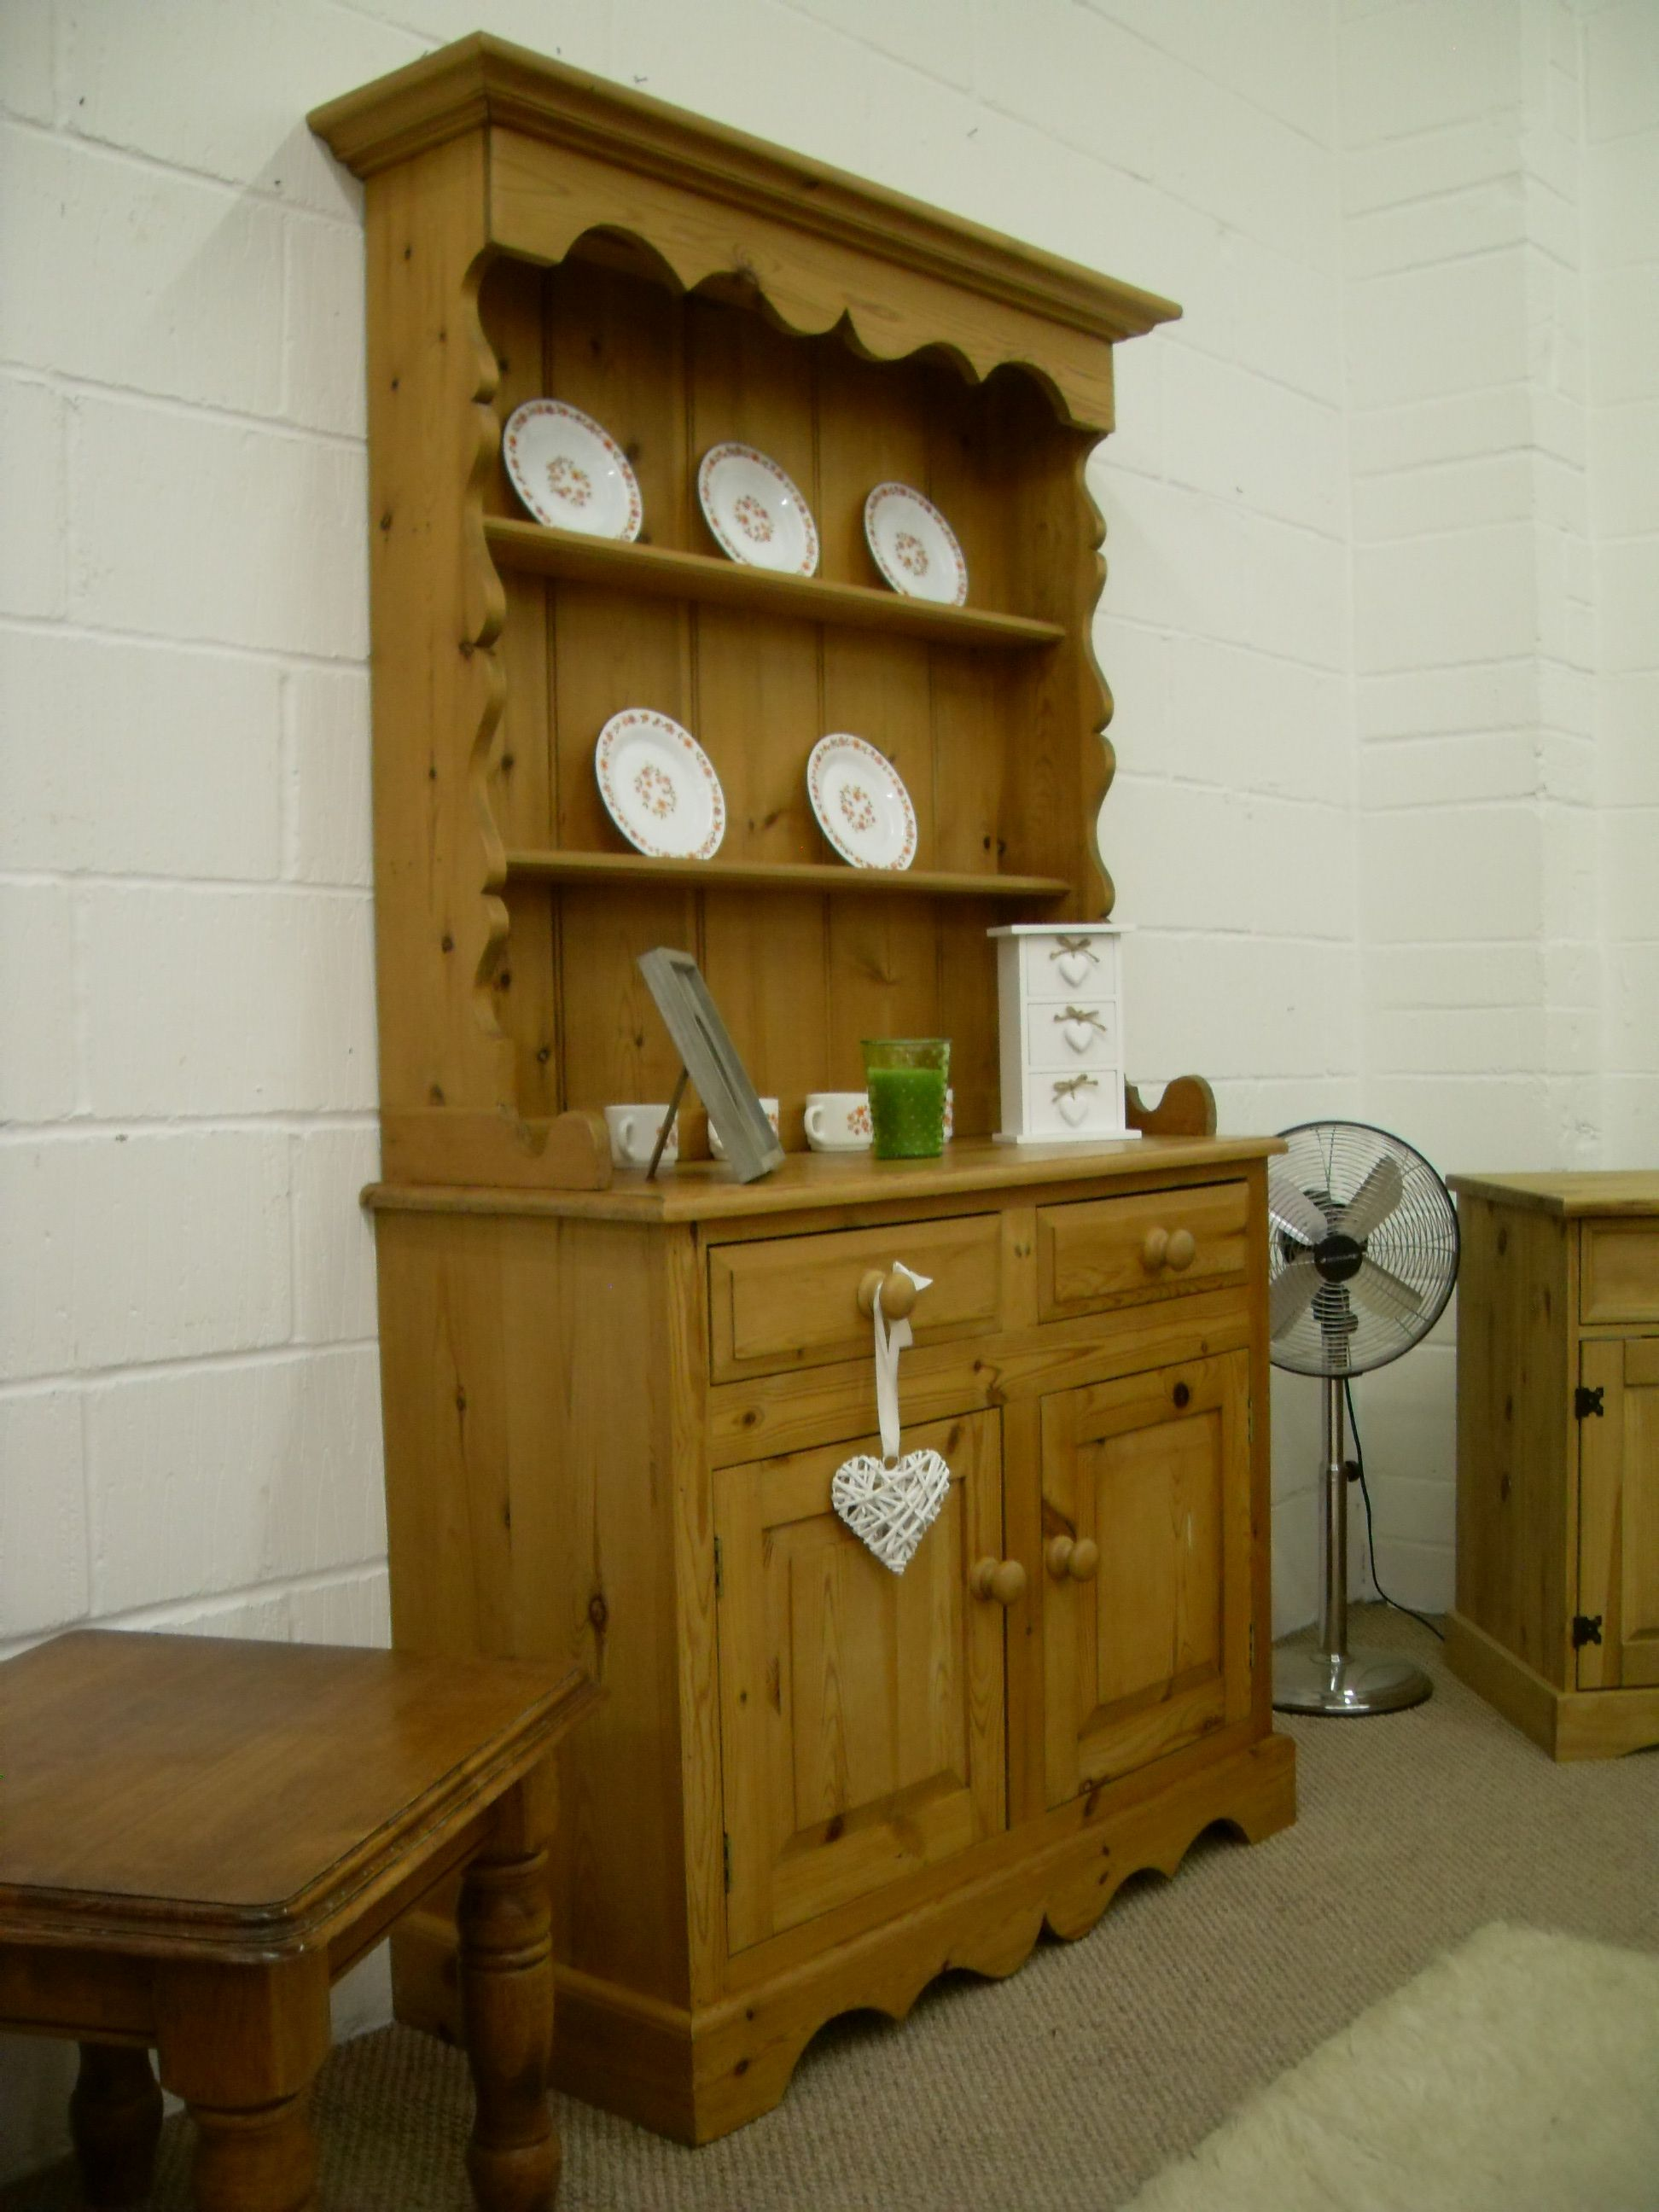 furniture ridge bedroom slate item dressers dresser image change pine product solid s click chests to leon